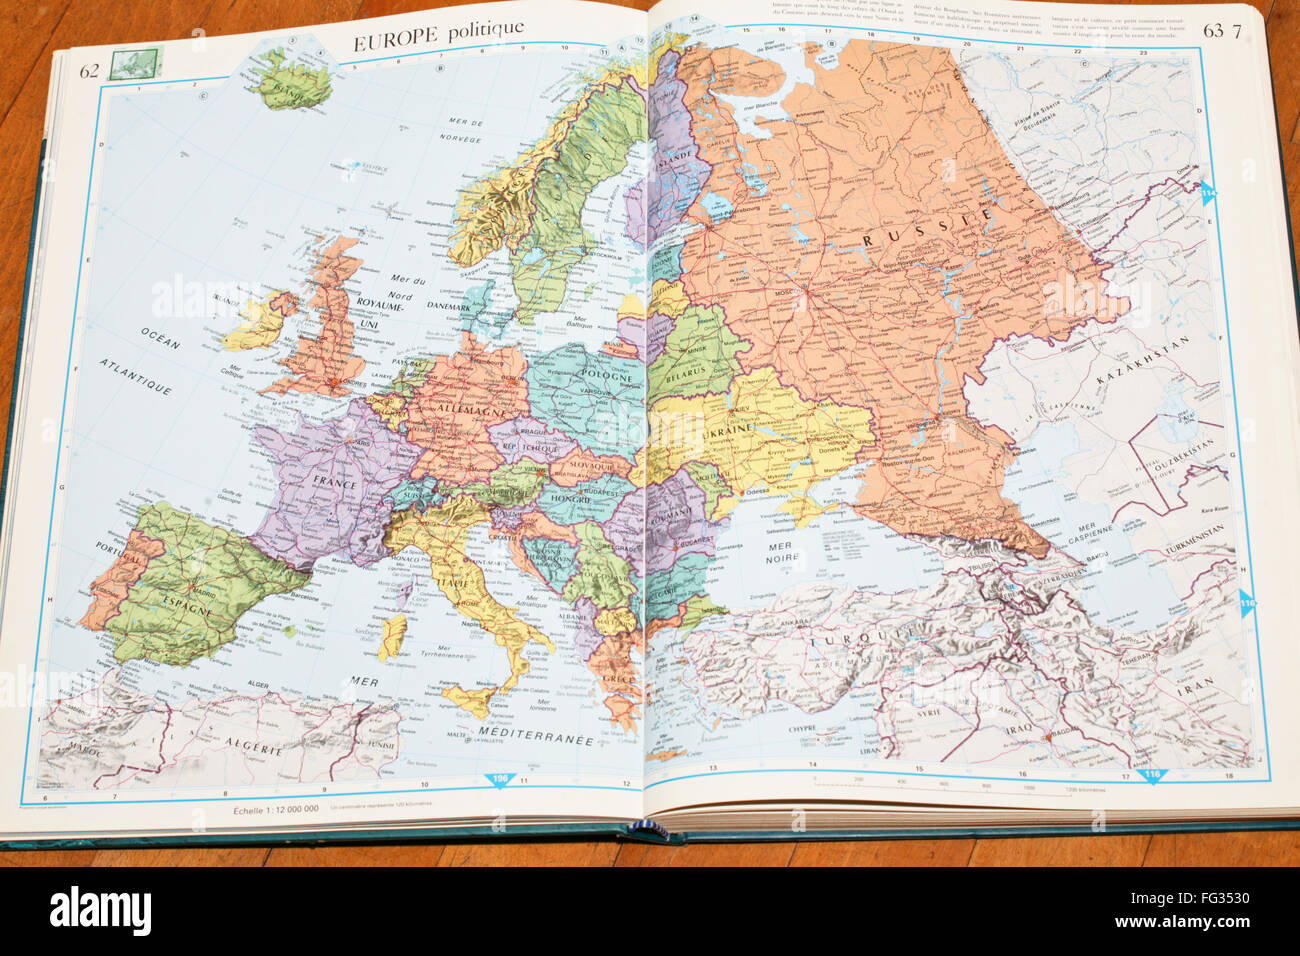 Atlas open book stock photos atlas open book stock images alamy french atlas book open stock image gumiabroncs Image collections